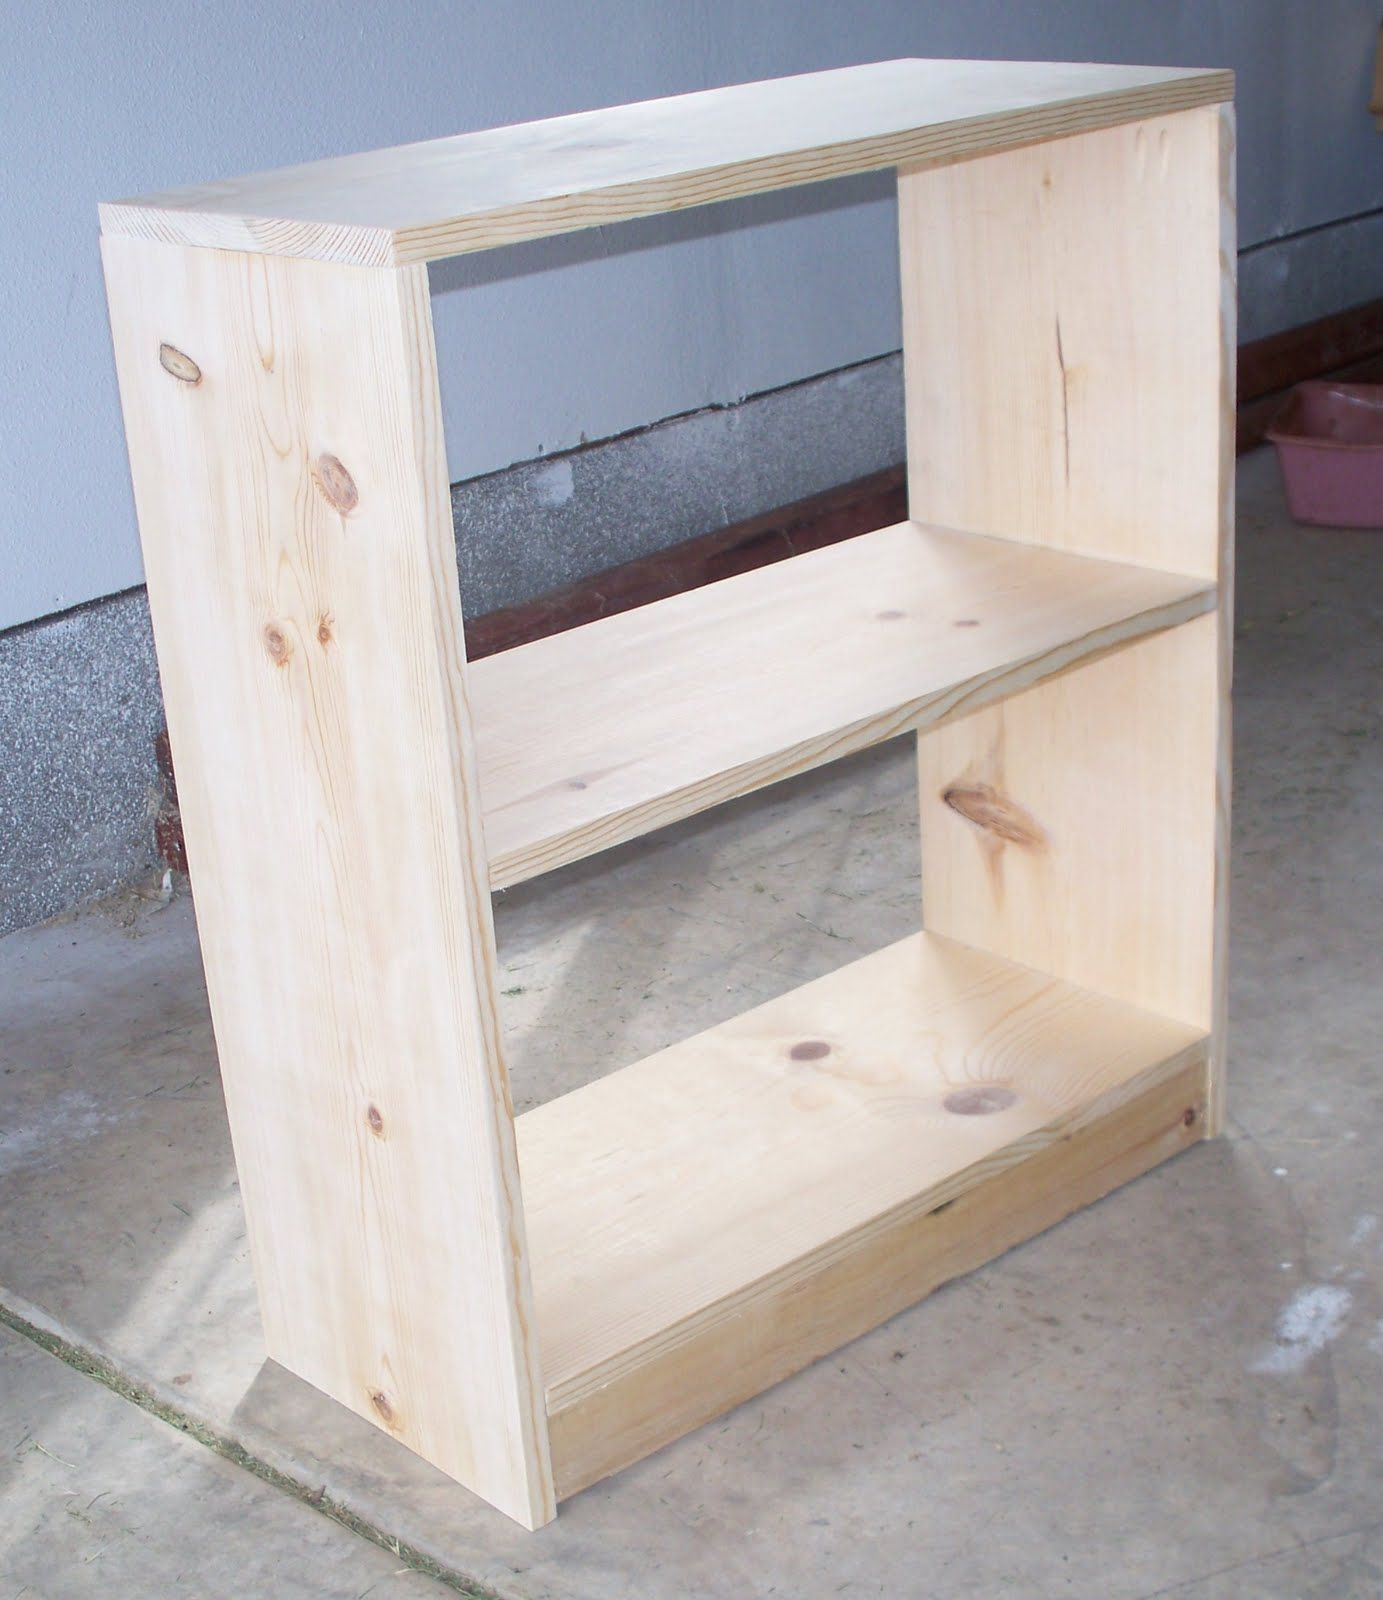 How to build small bookshelf plans pdf woodworking plans for How to make wall shelves easy